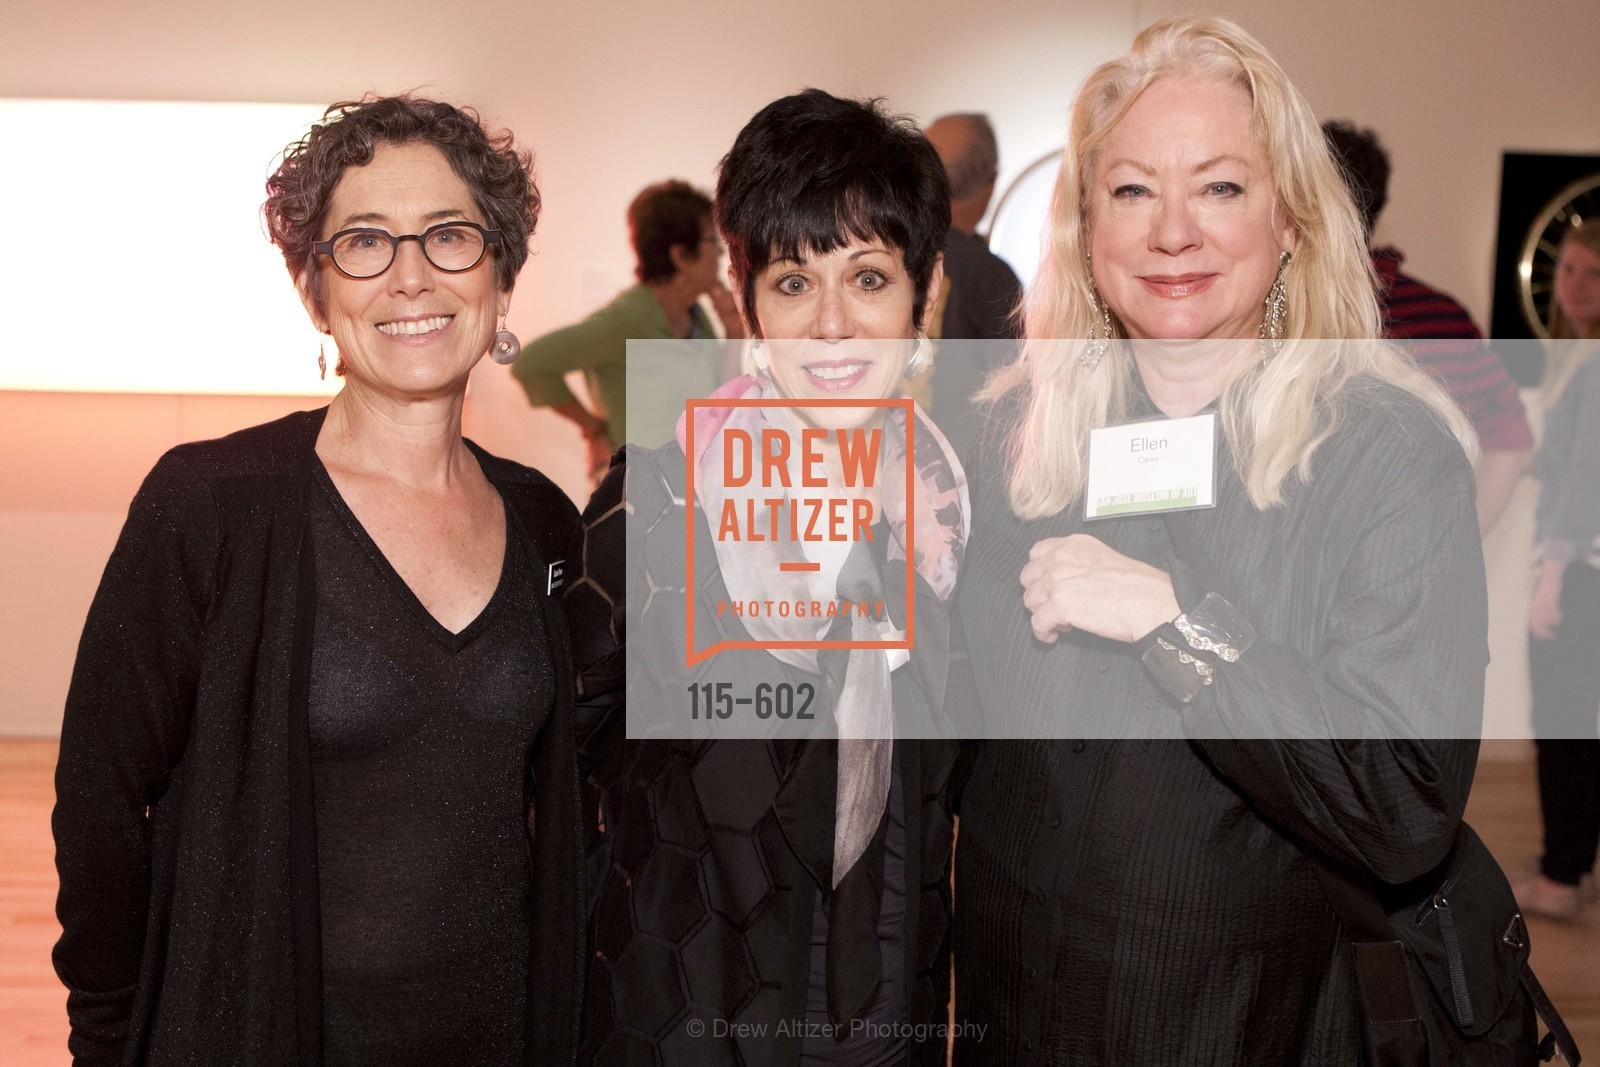 Susan Krane, Hildy Shandell, Ellen Carey, SAN JOSE MUSEUM OF ART Fall Reception Opening, US, October 8th, 2014,Drew Altizer, Drew Altizer Photography, full-service agency, private events, San Francisco photographer, photographer california